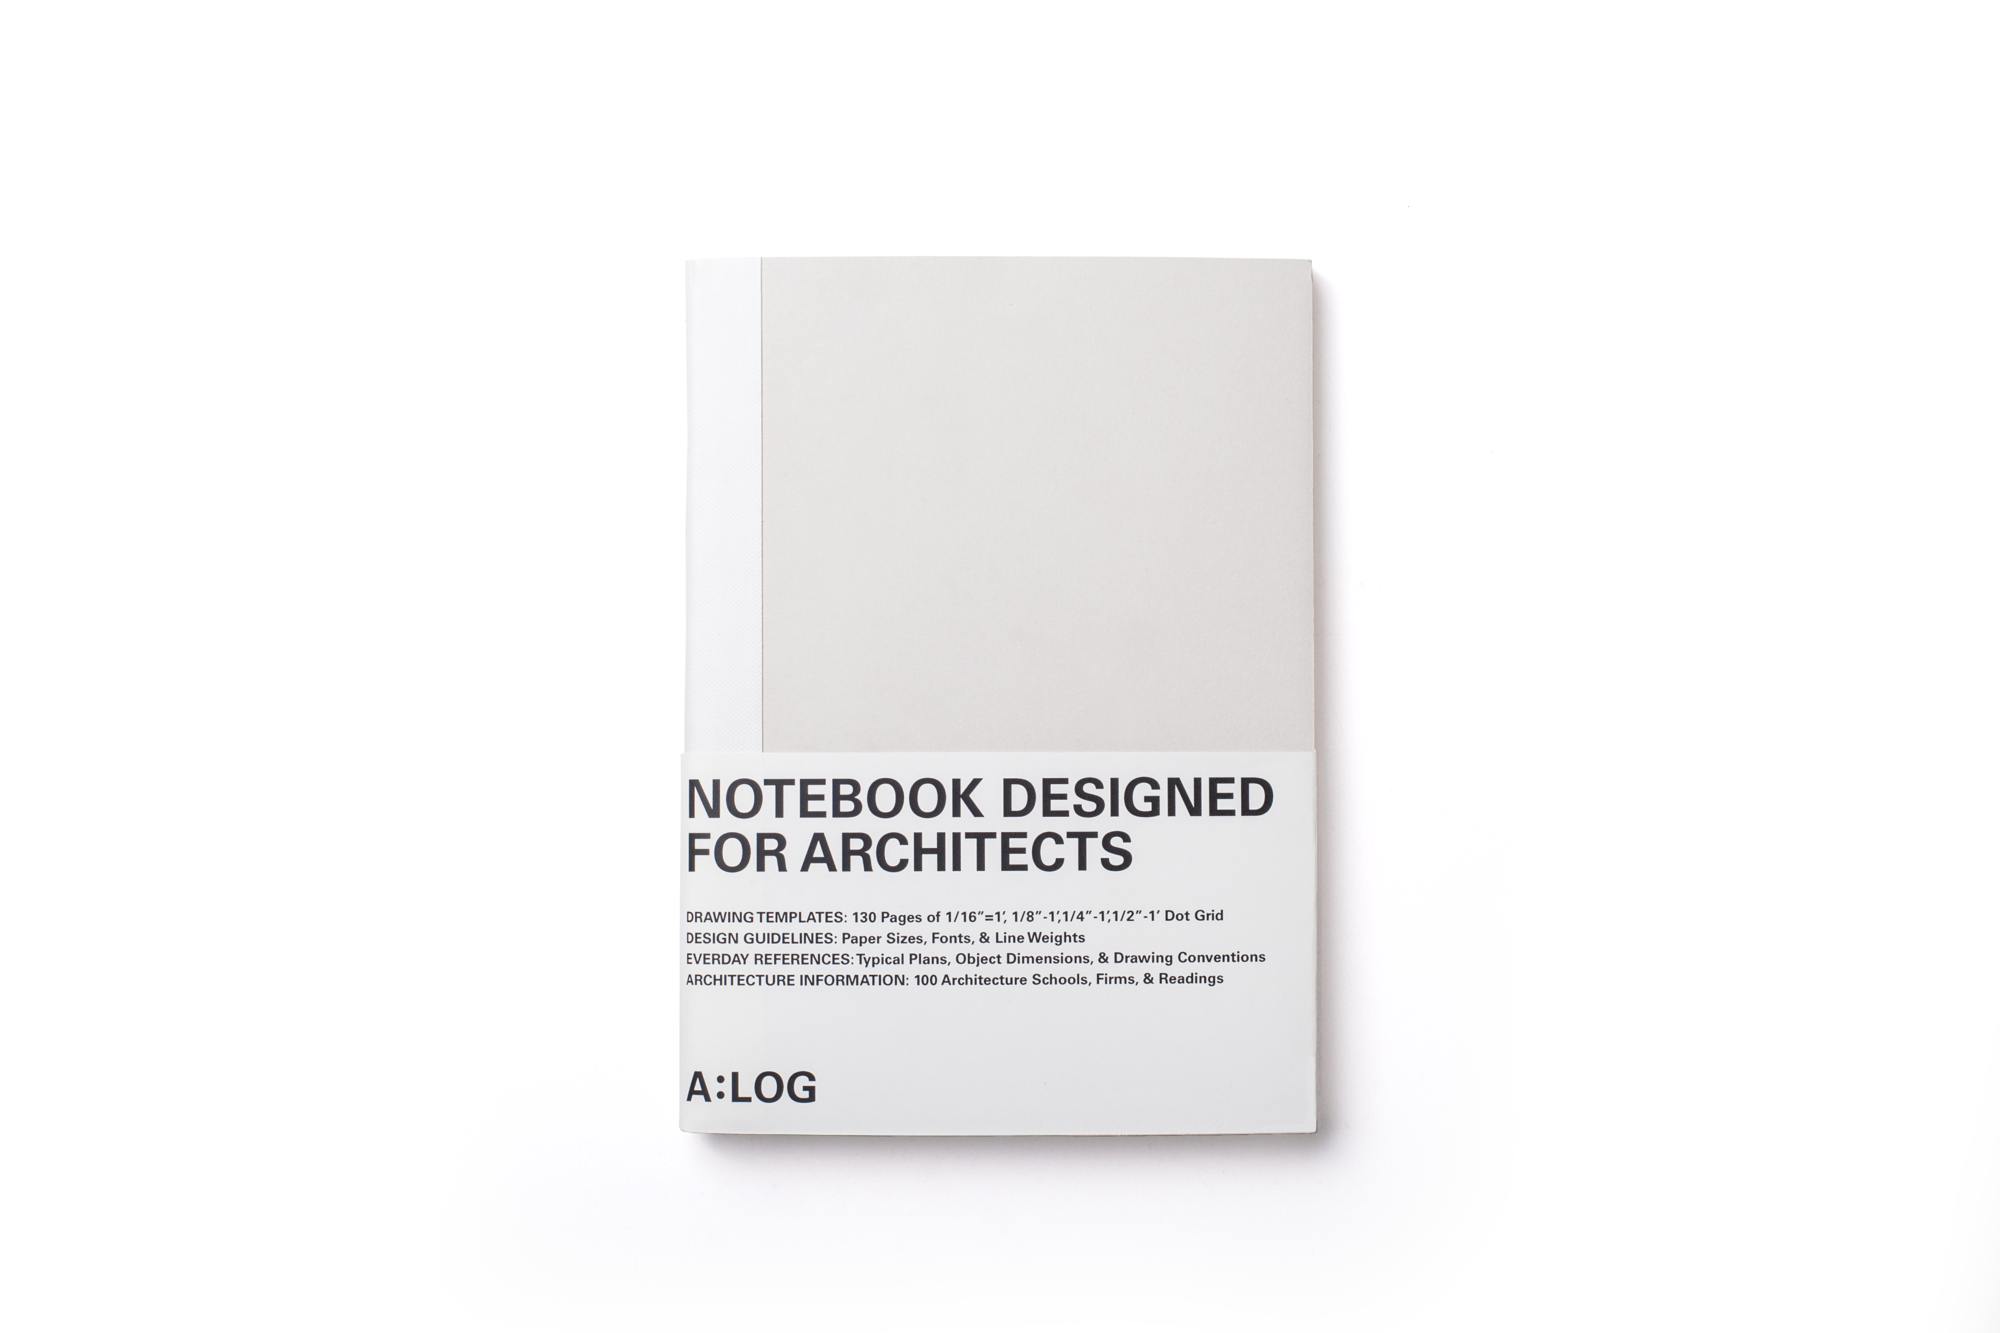 A:LOG : A Notebook Designed Just for Architects, Courtesy of A:LOG